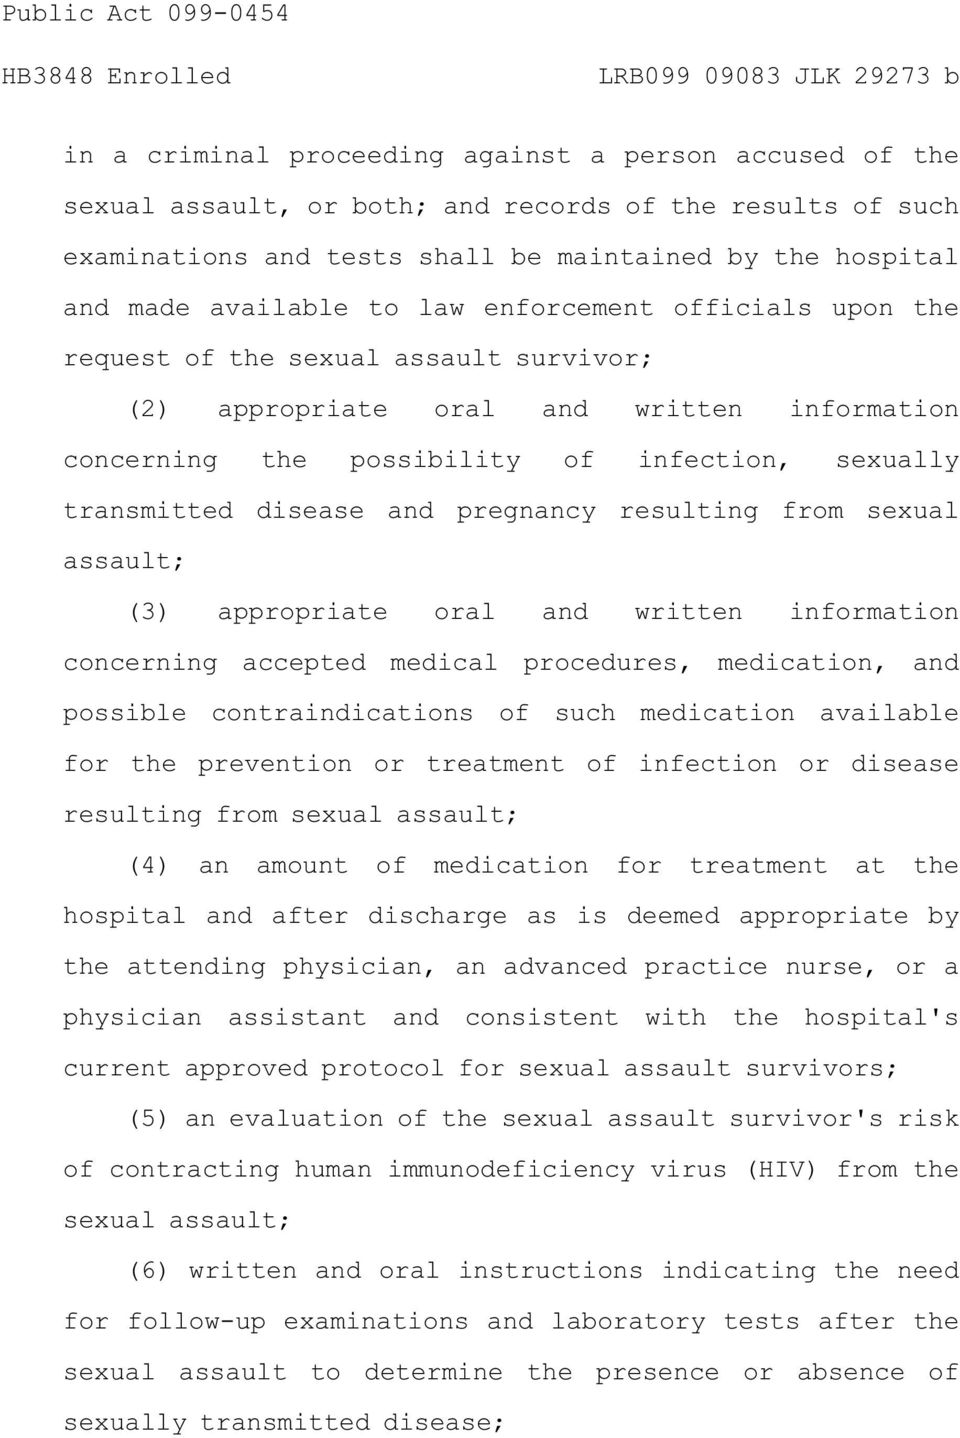 pregnancy resulting from sexual assault; (3) appropriate oral and written information concerning accepted medical procedures, medication, and possible contraindications of such medication available